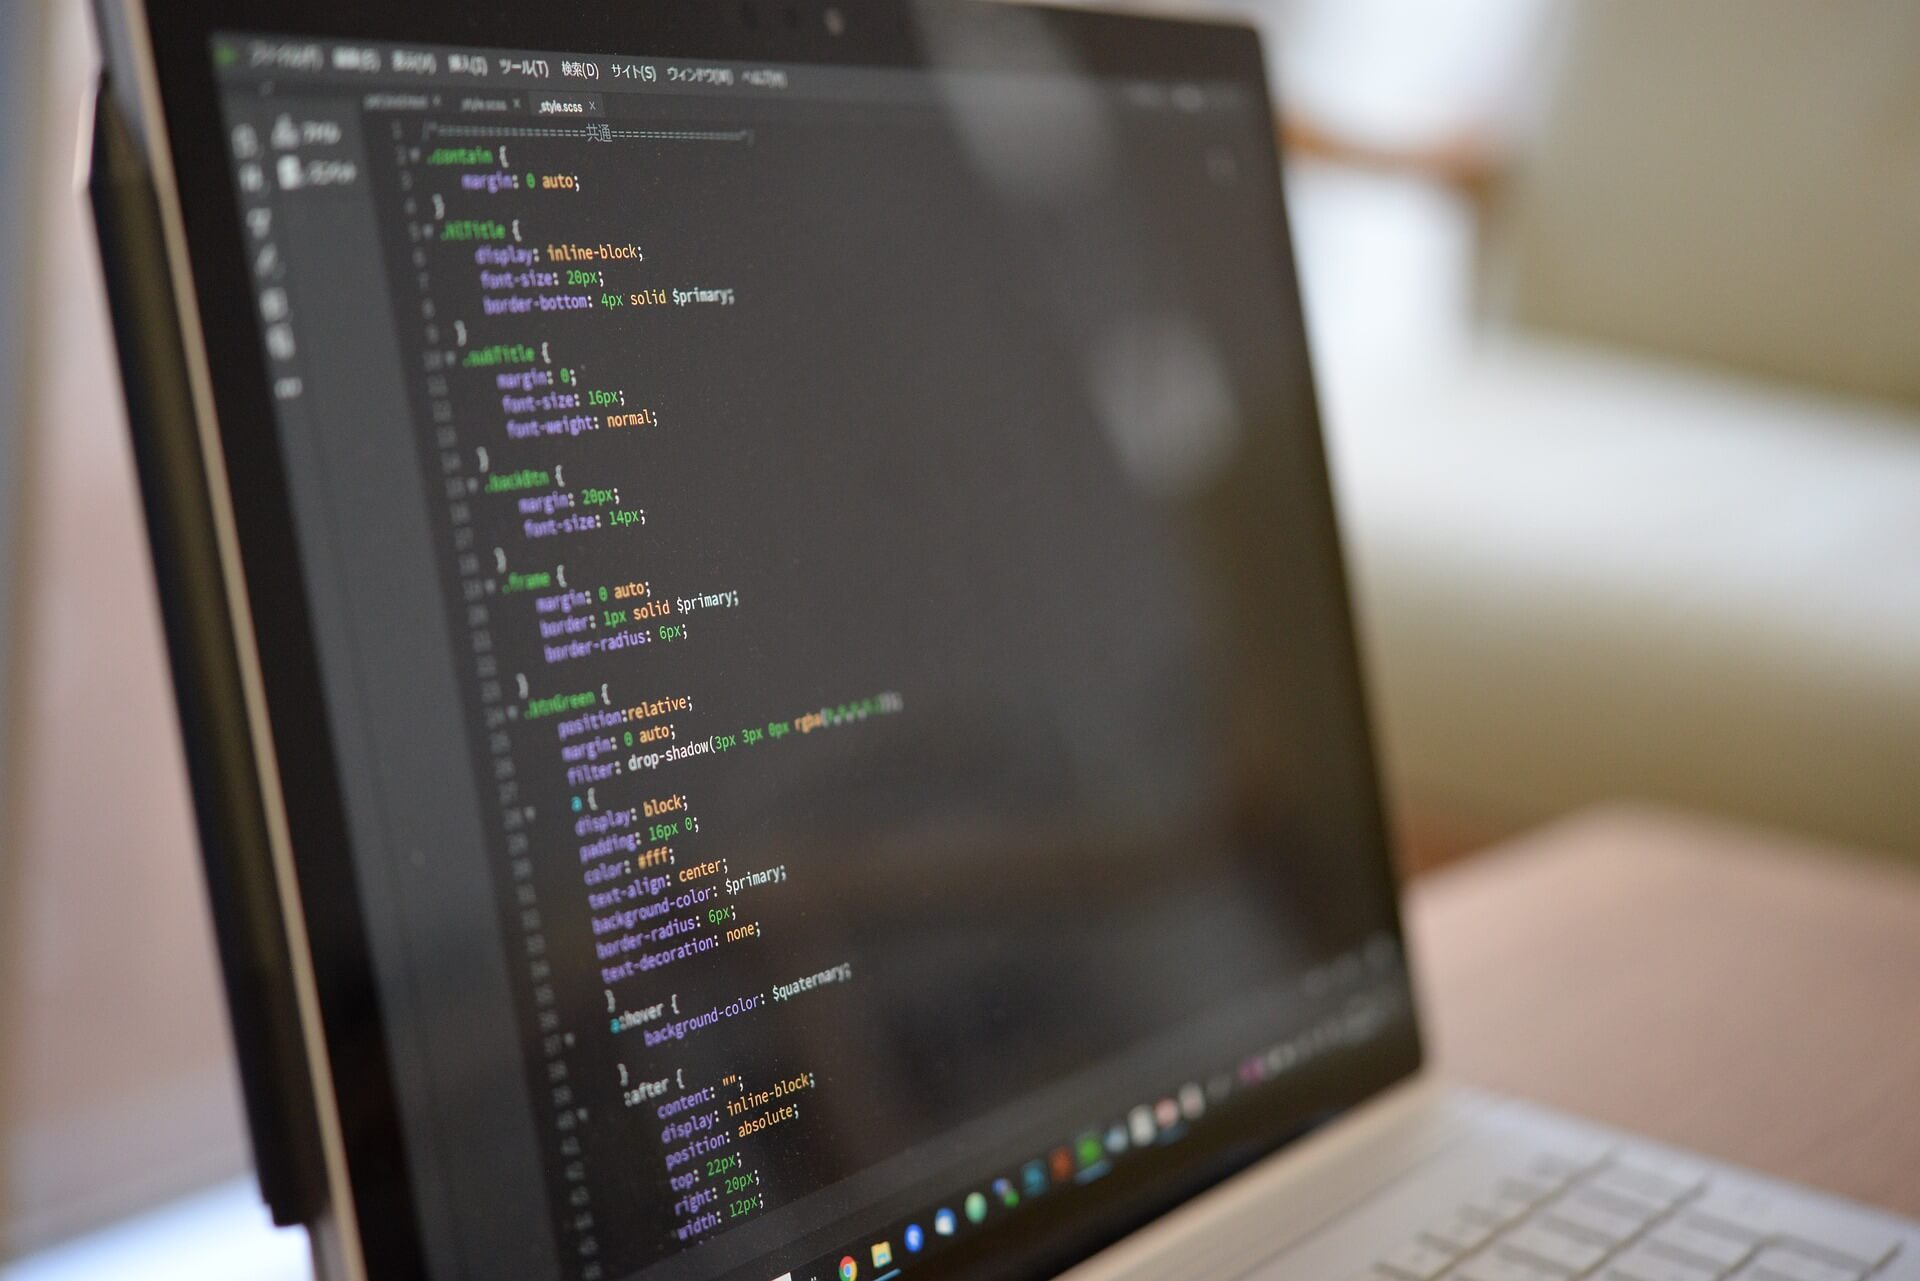 JavaScript Variables, Data Types, Expressions and Objects